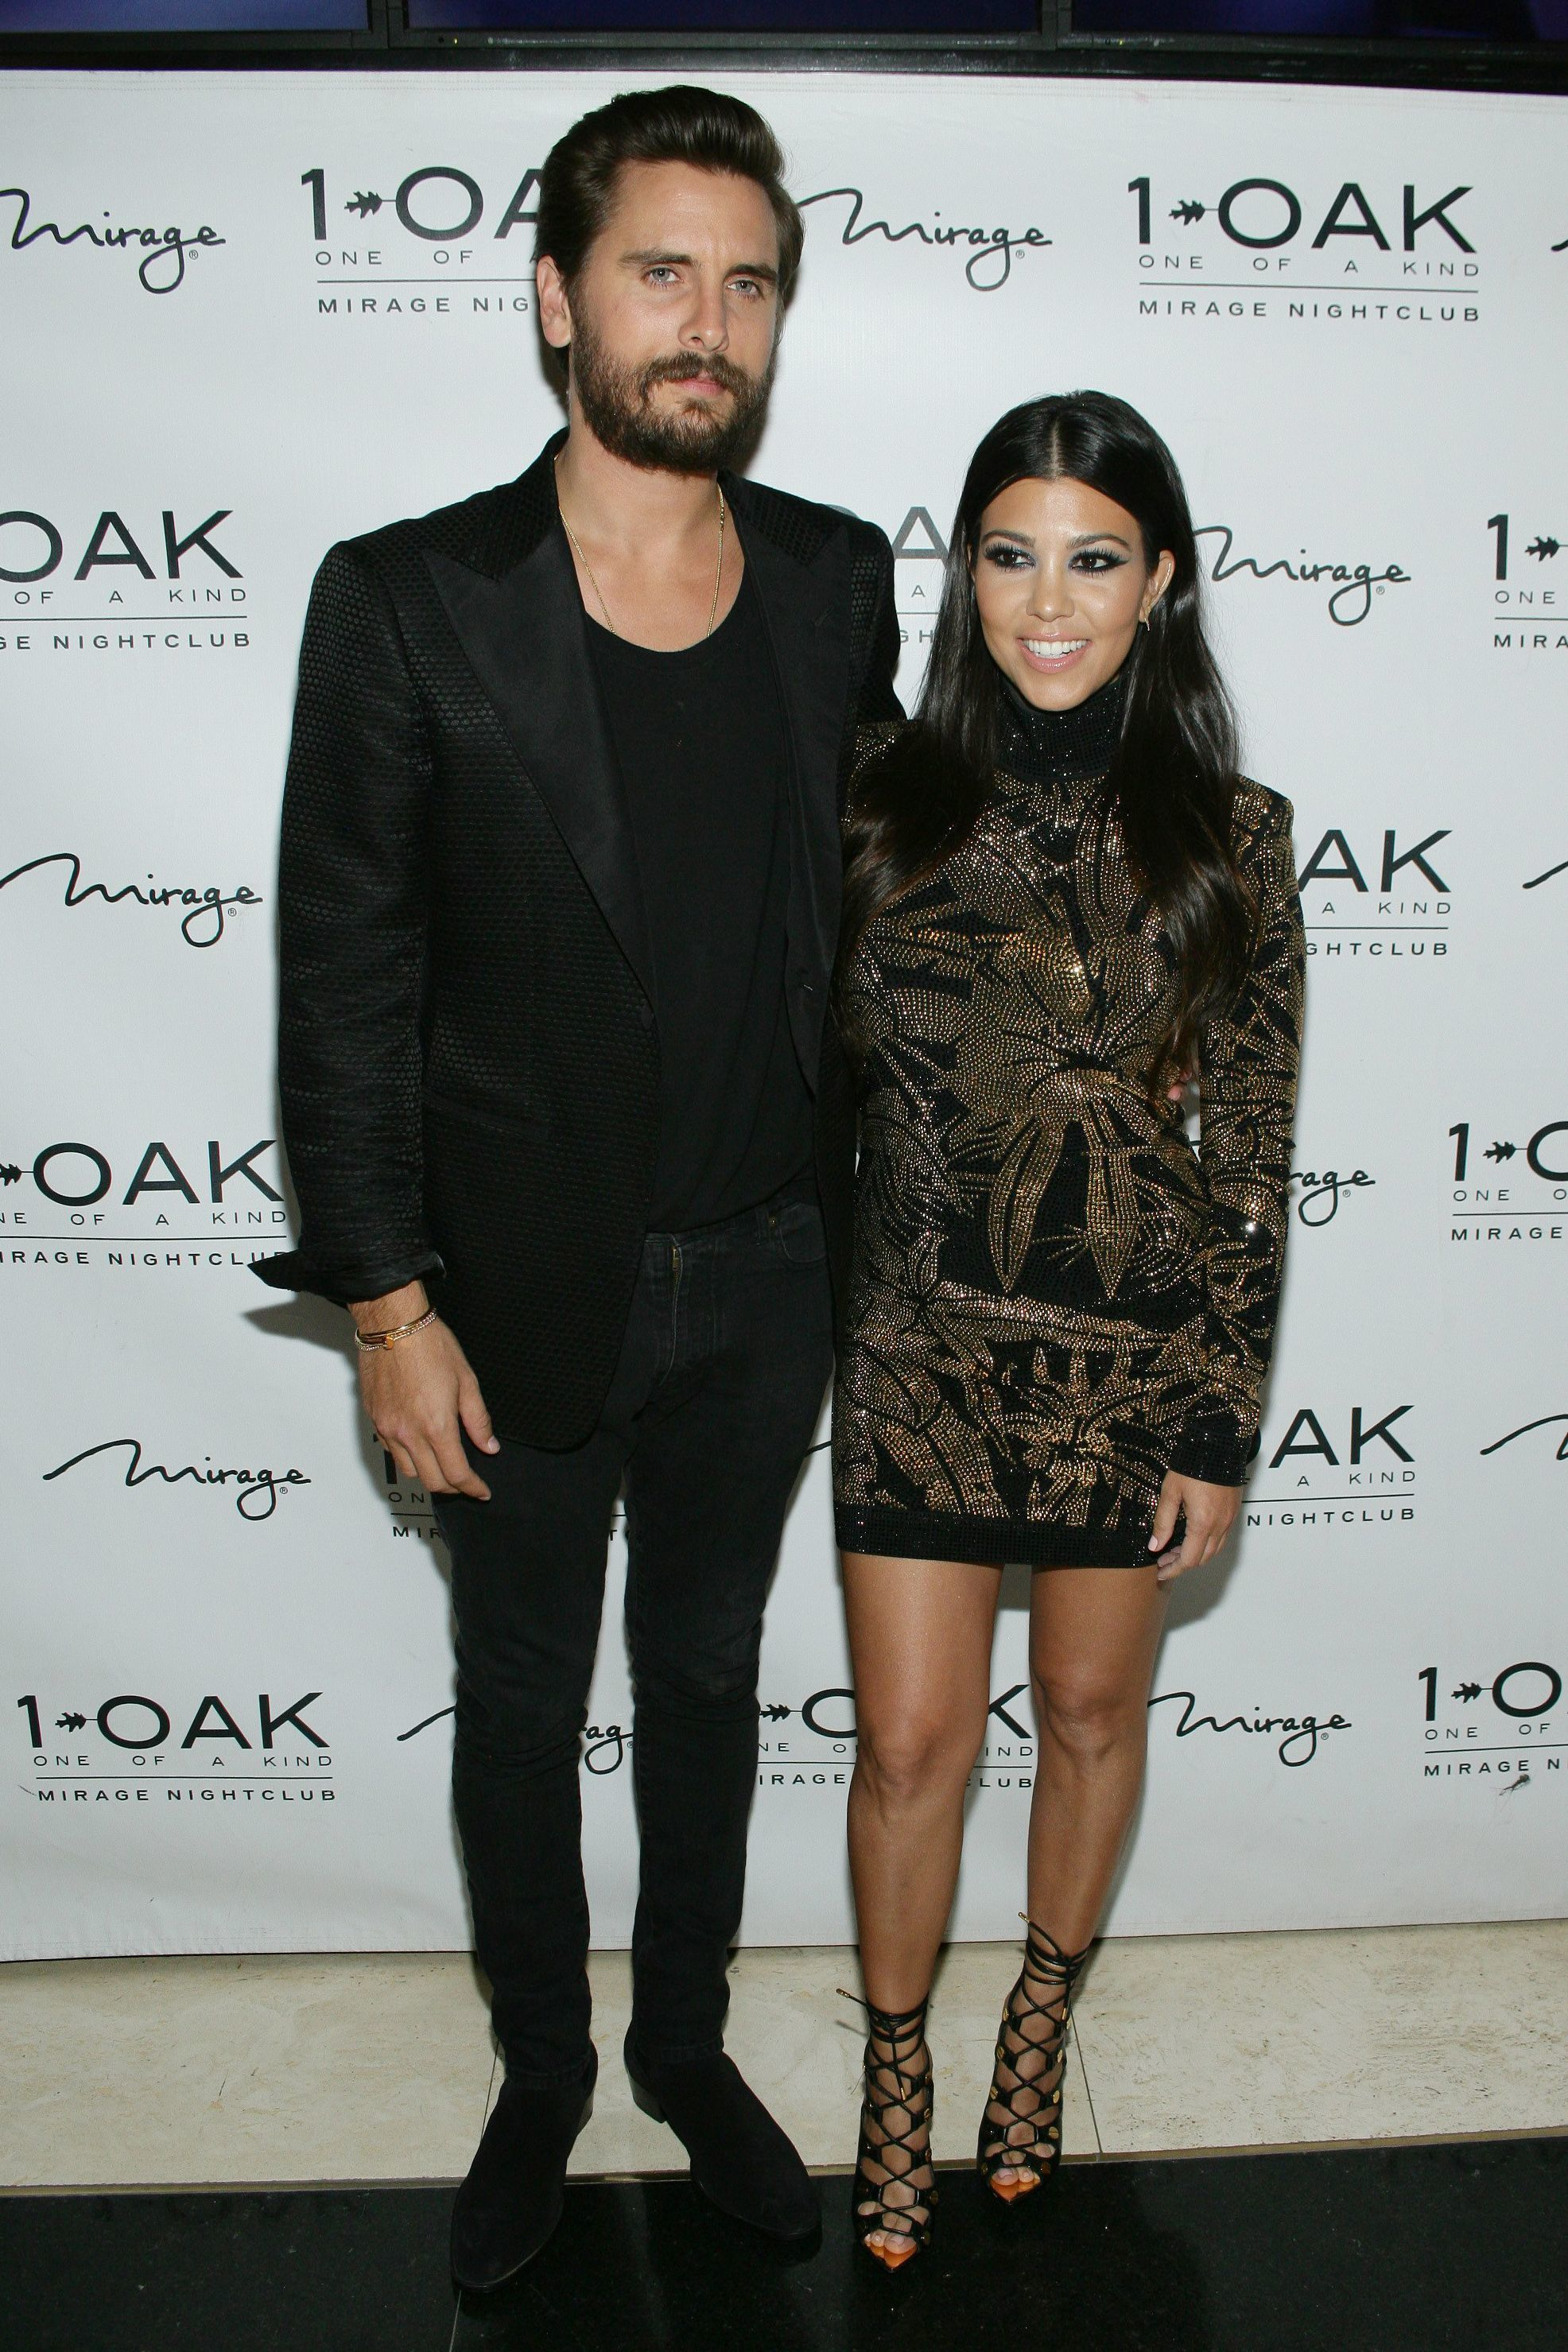 scott kourtney kardashian